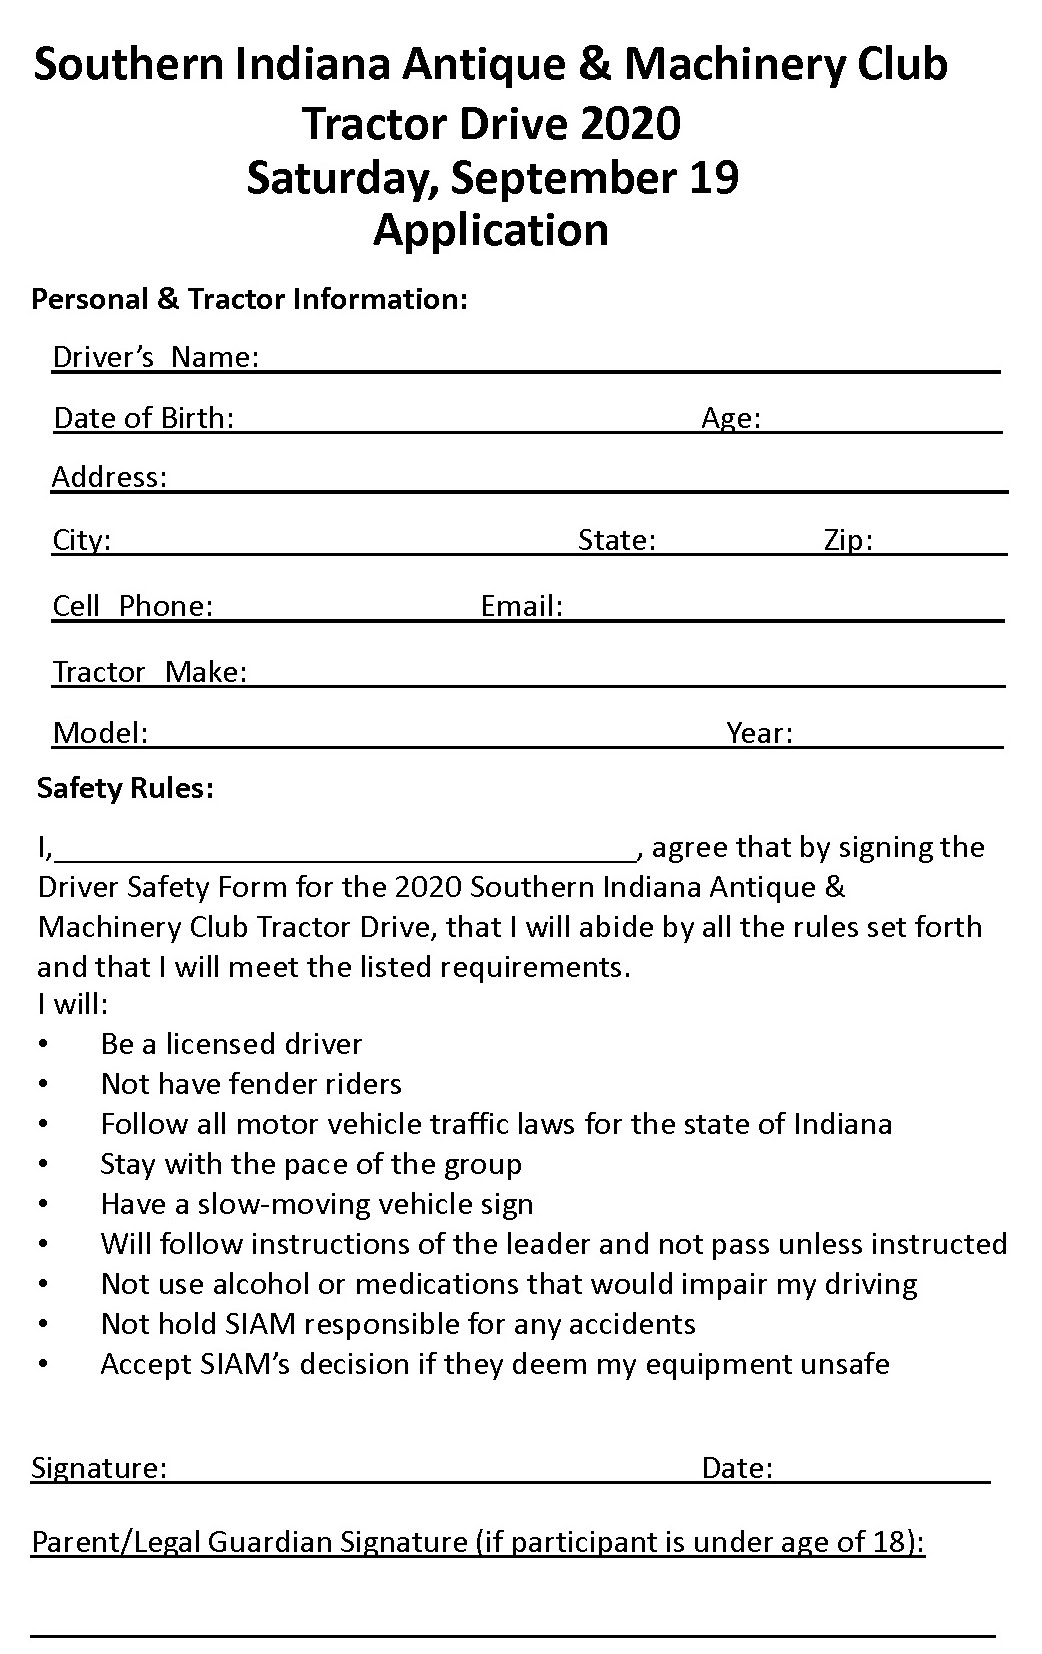 Driver Application 2020 one per page for website